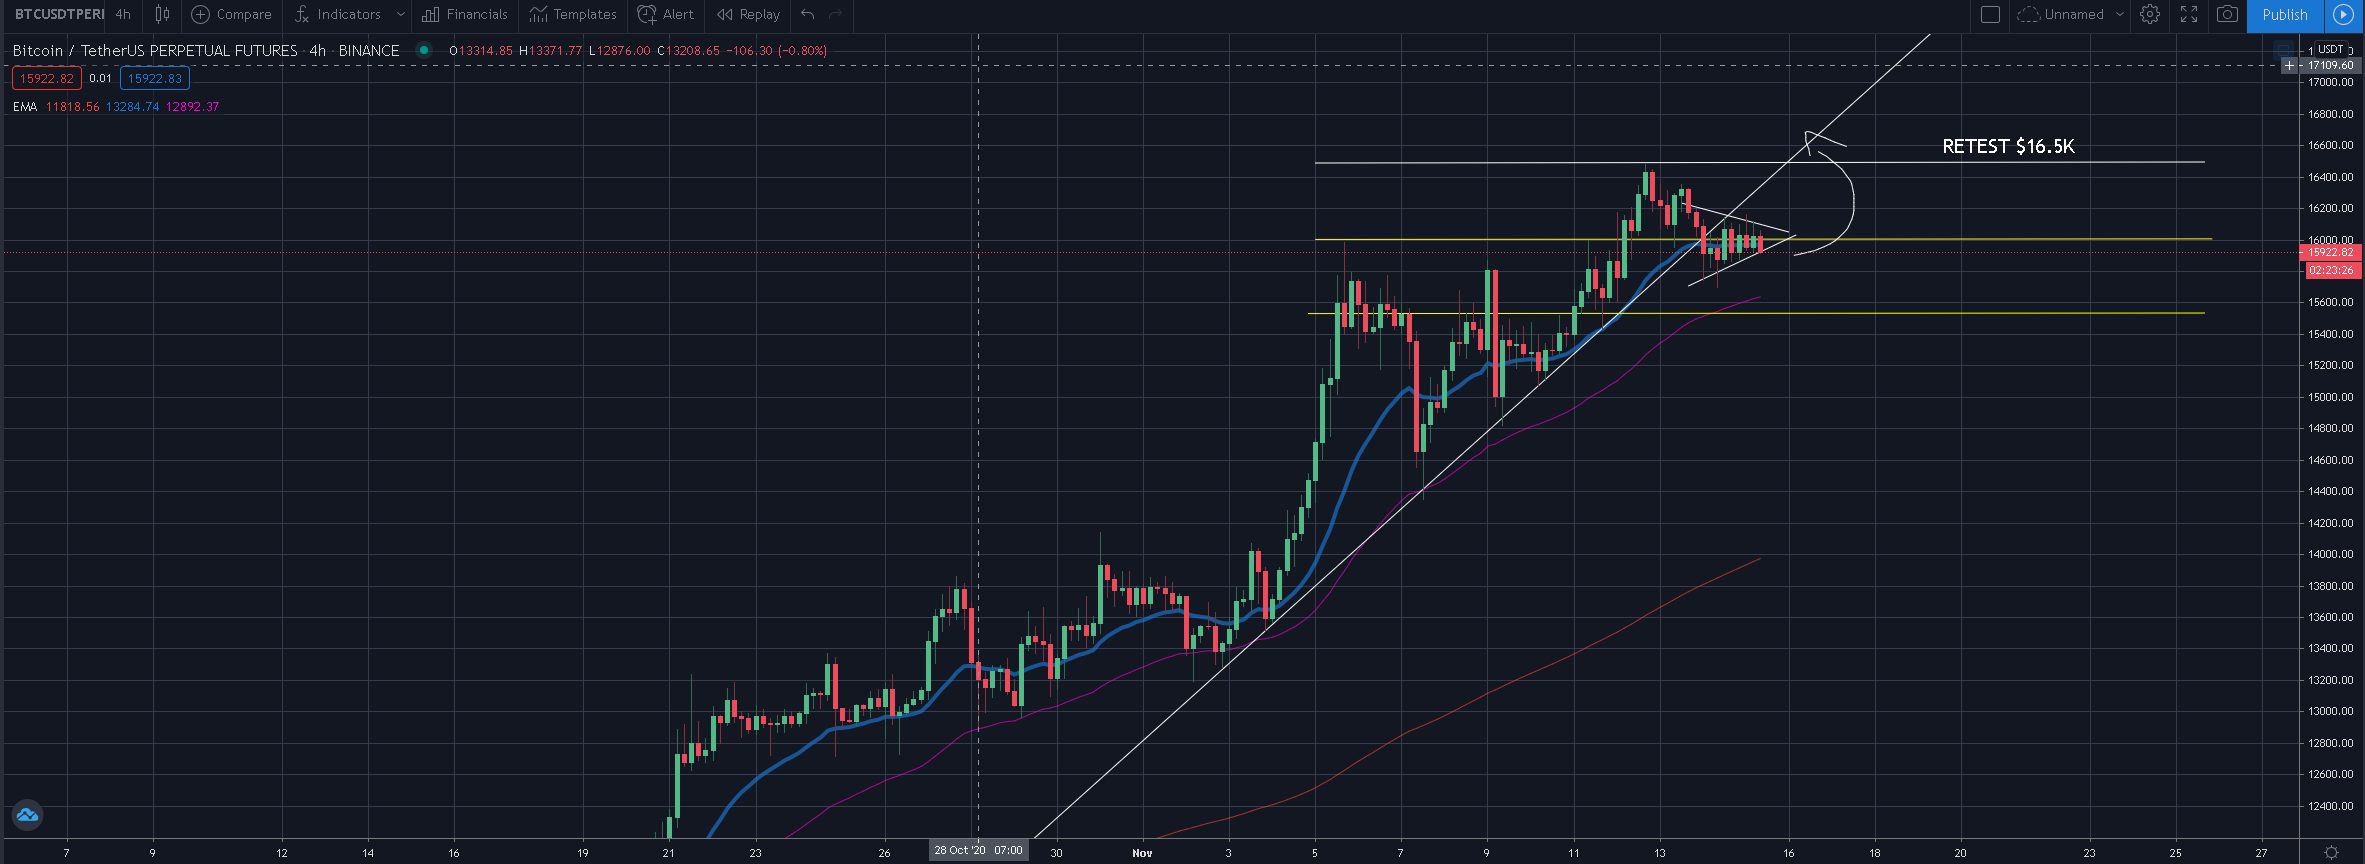 Bitcoin for the end of 2020 - Correction probably in the works